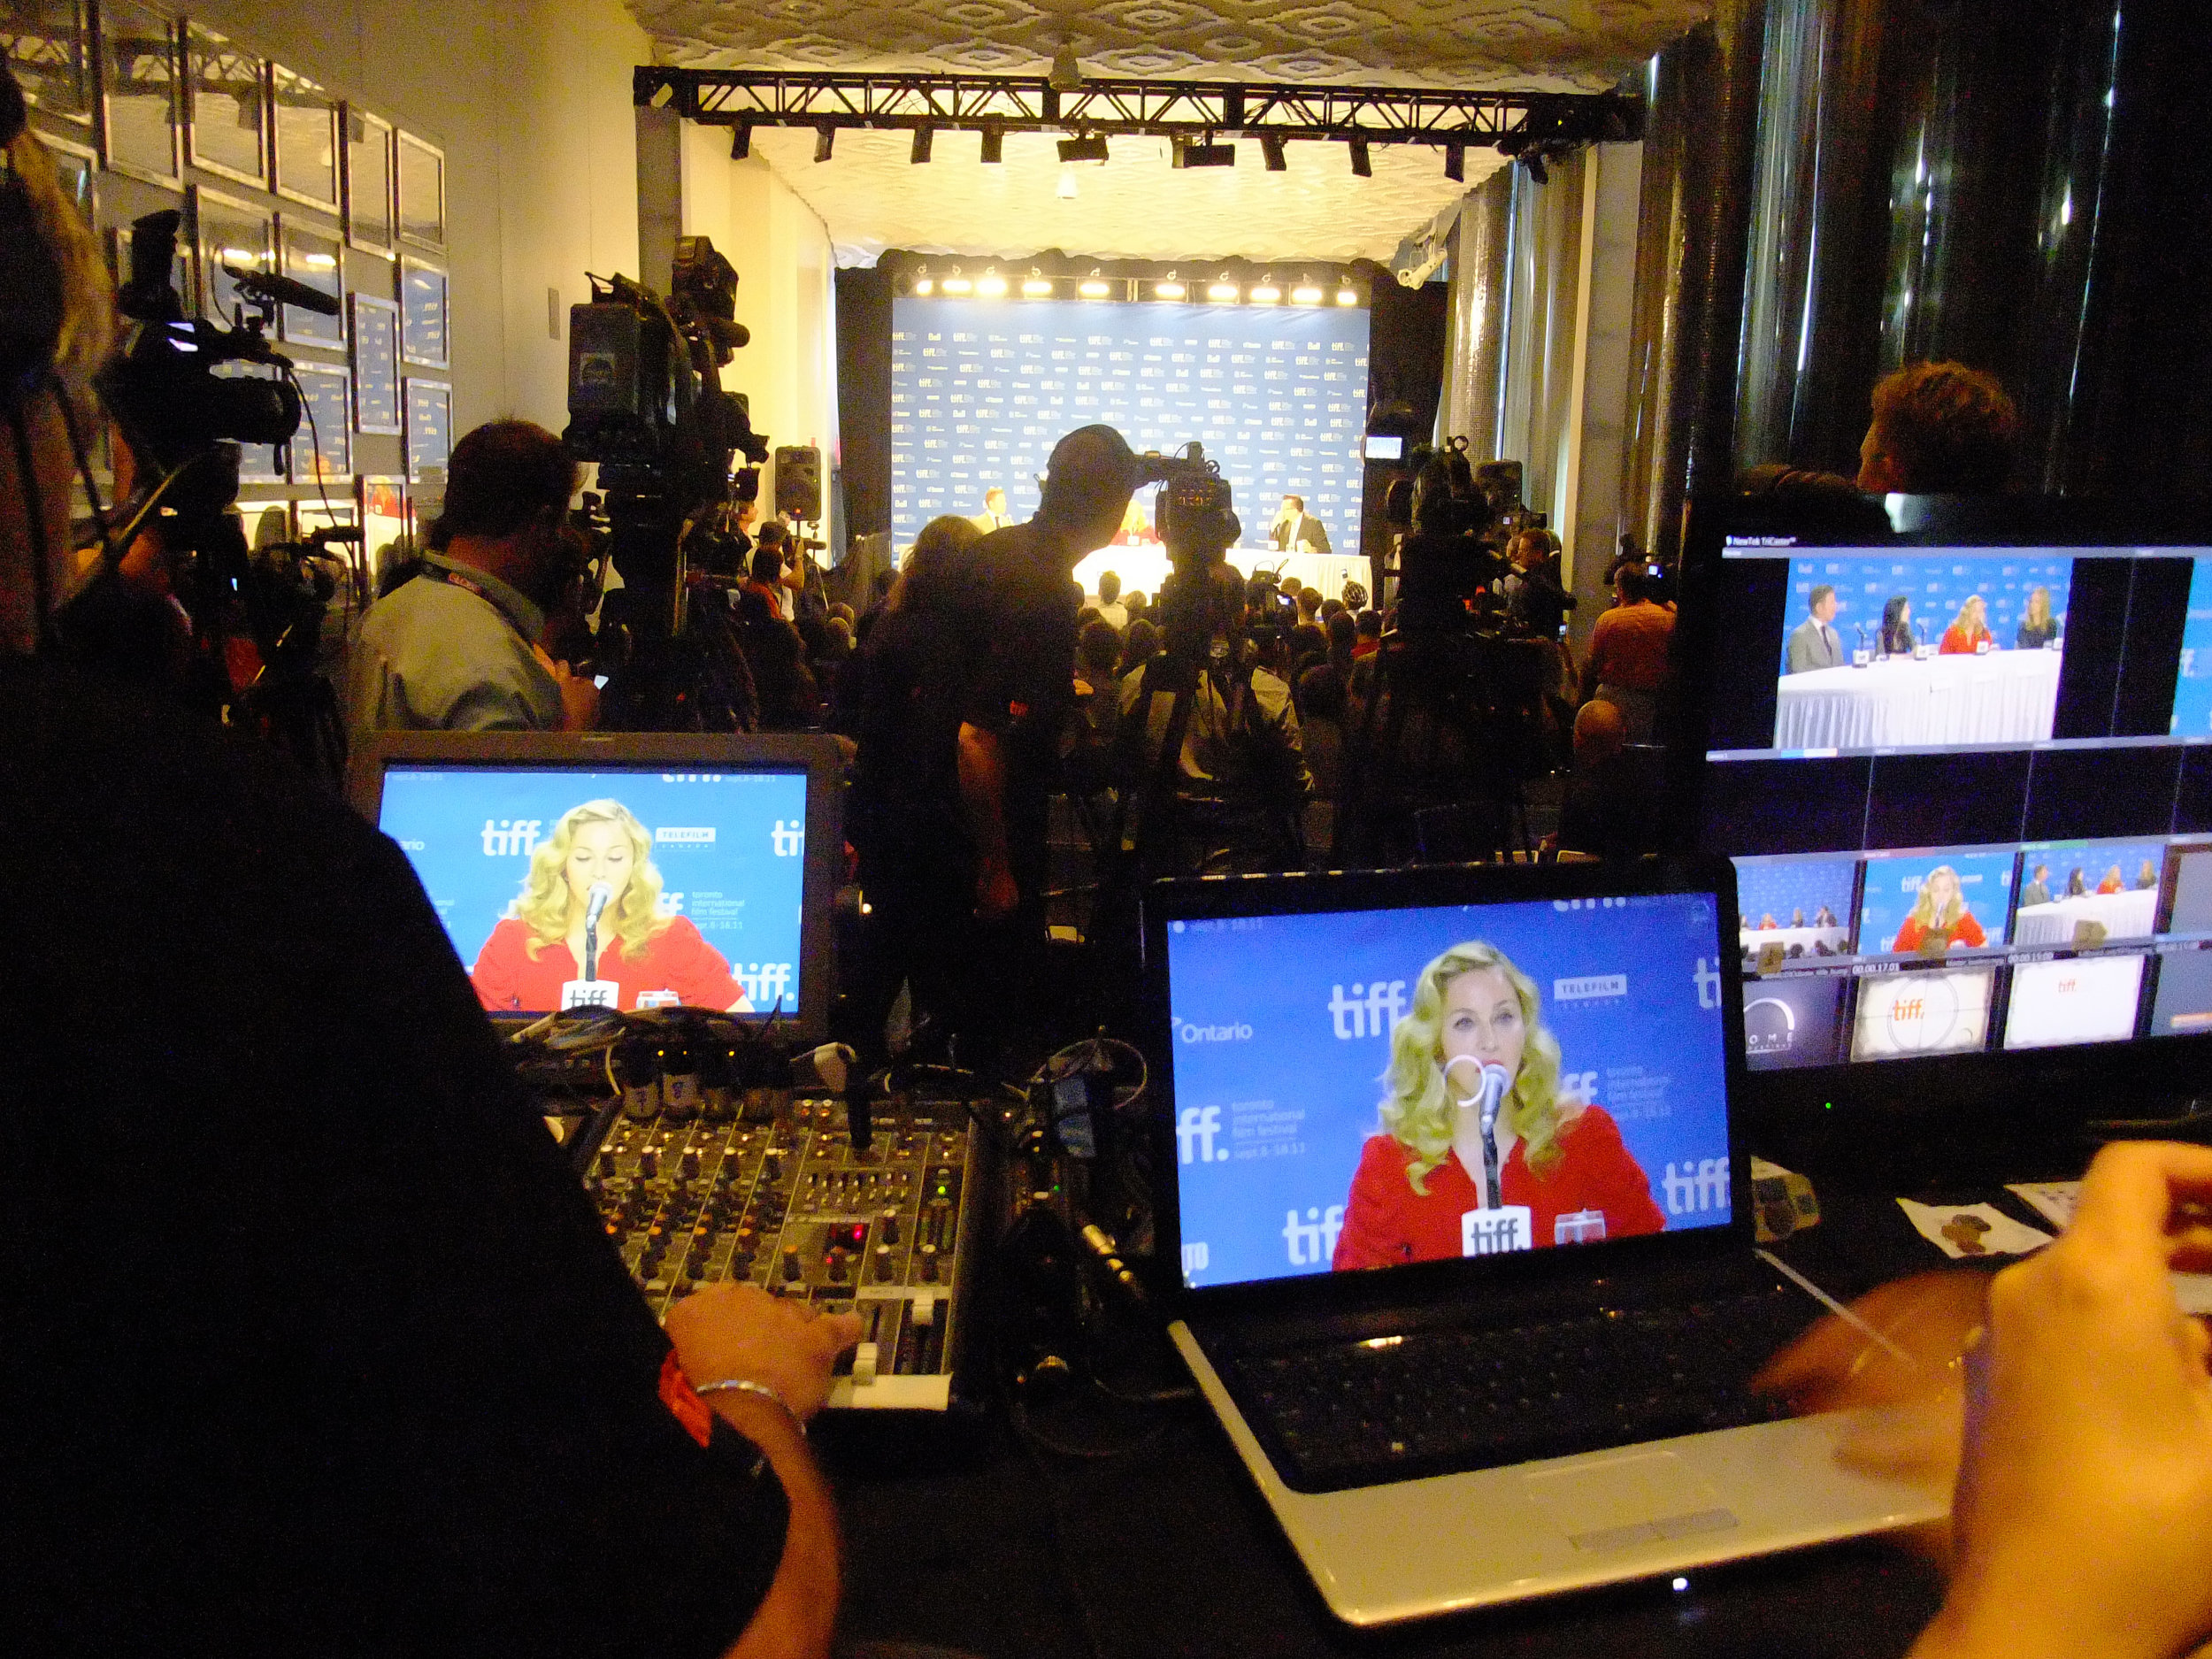 Grassby & Associates designed the media interview set for the festival including the building of the interview table. Madonna on set.